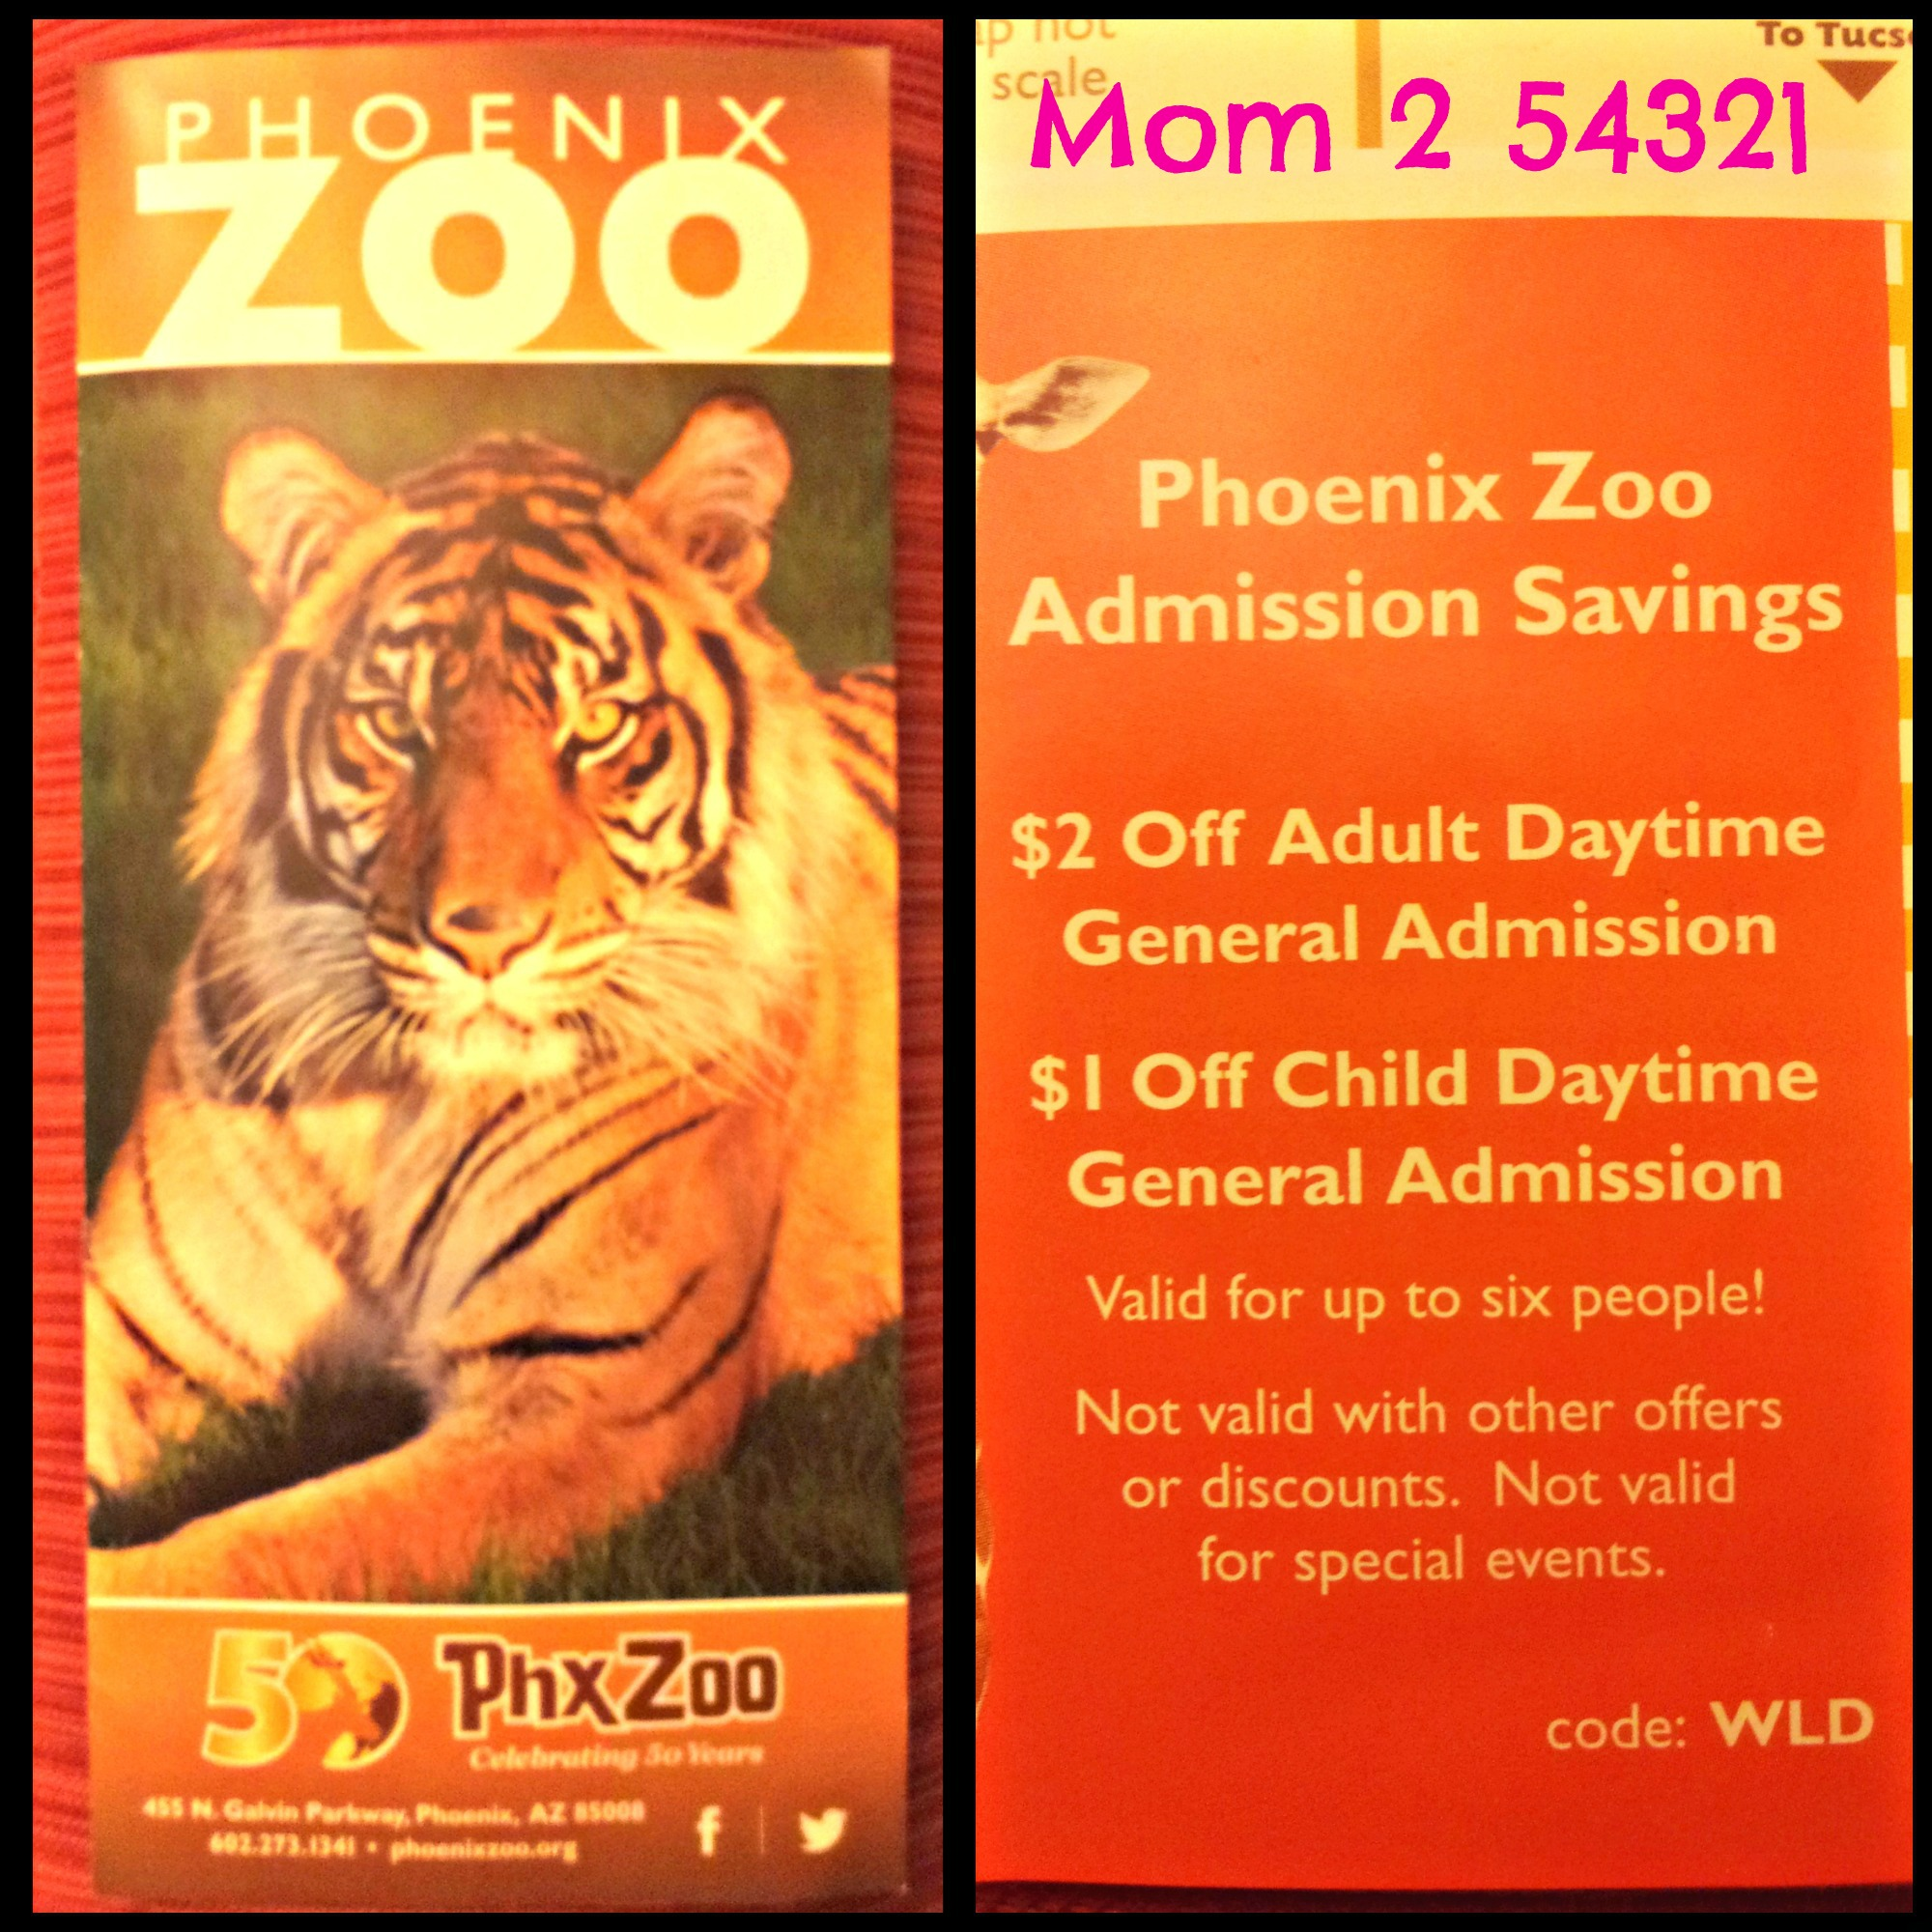 General Admission Tickets are good for a single admission to the zoo. * *Dates and Hours are subject to change without notice. Prices below reflect $2 online discount applied.